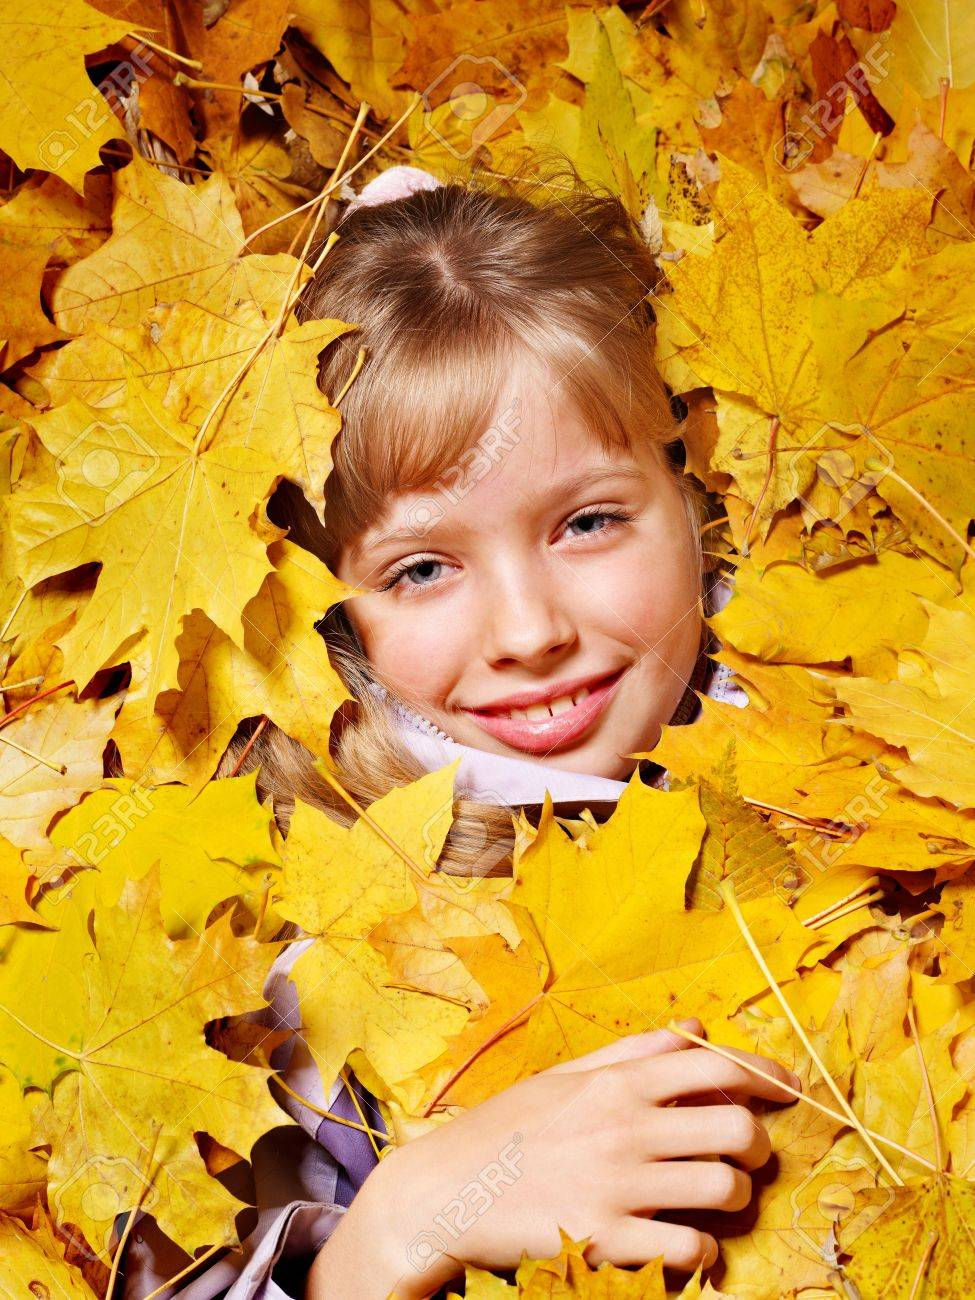 Child in autumn orange leaves. Outdoor. Stock Photo - 10701664